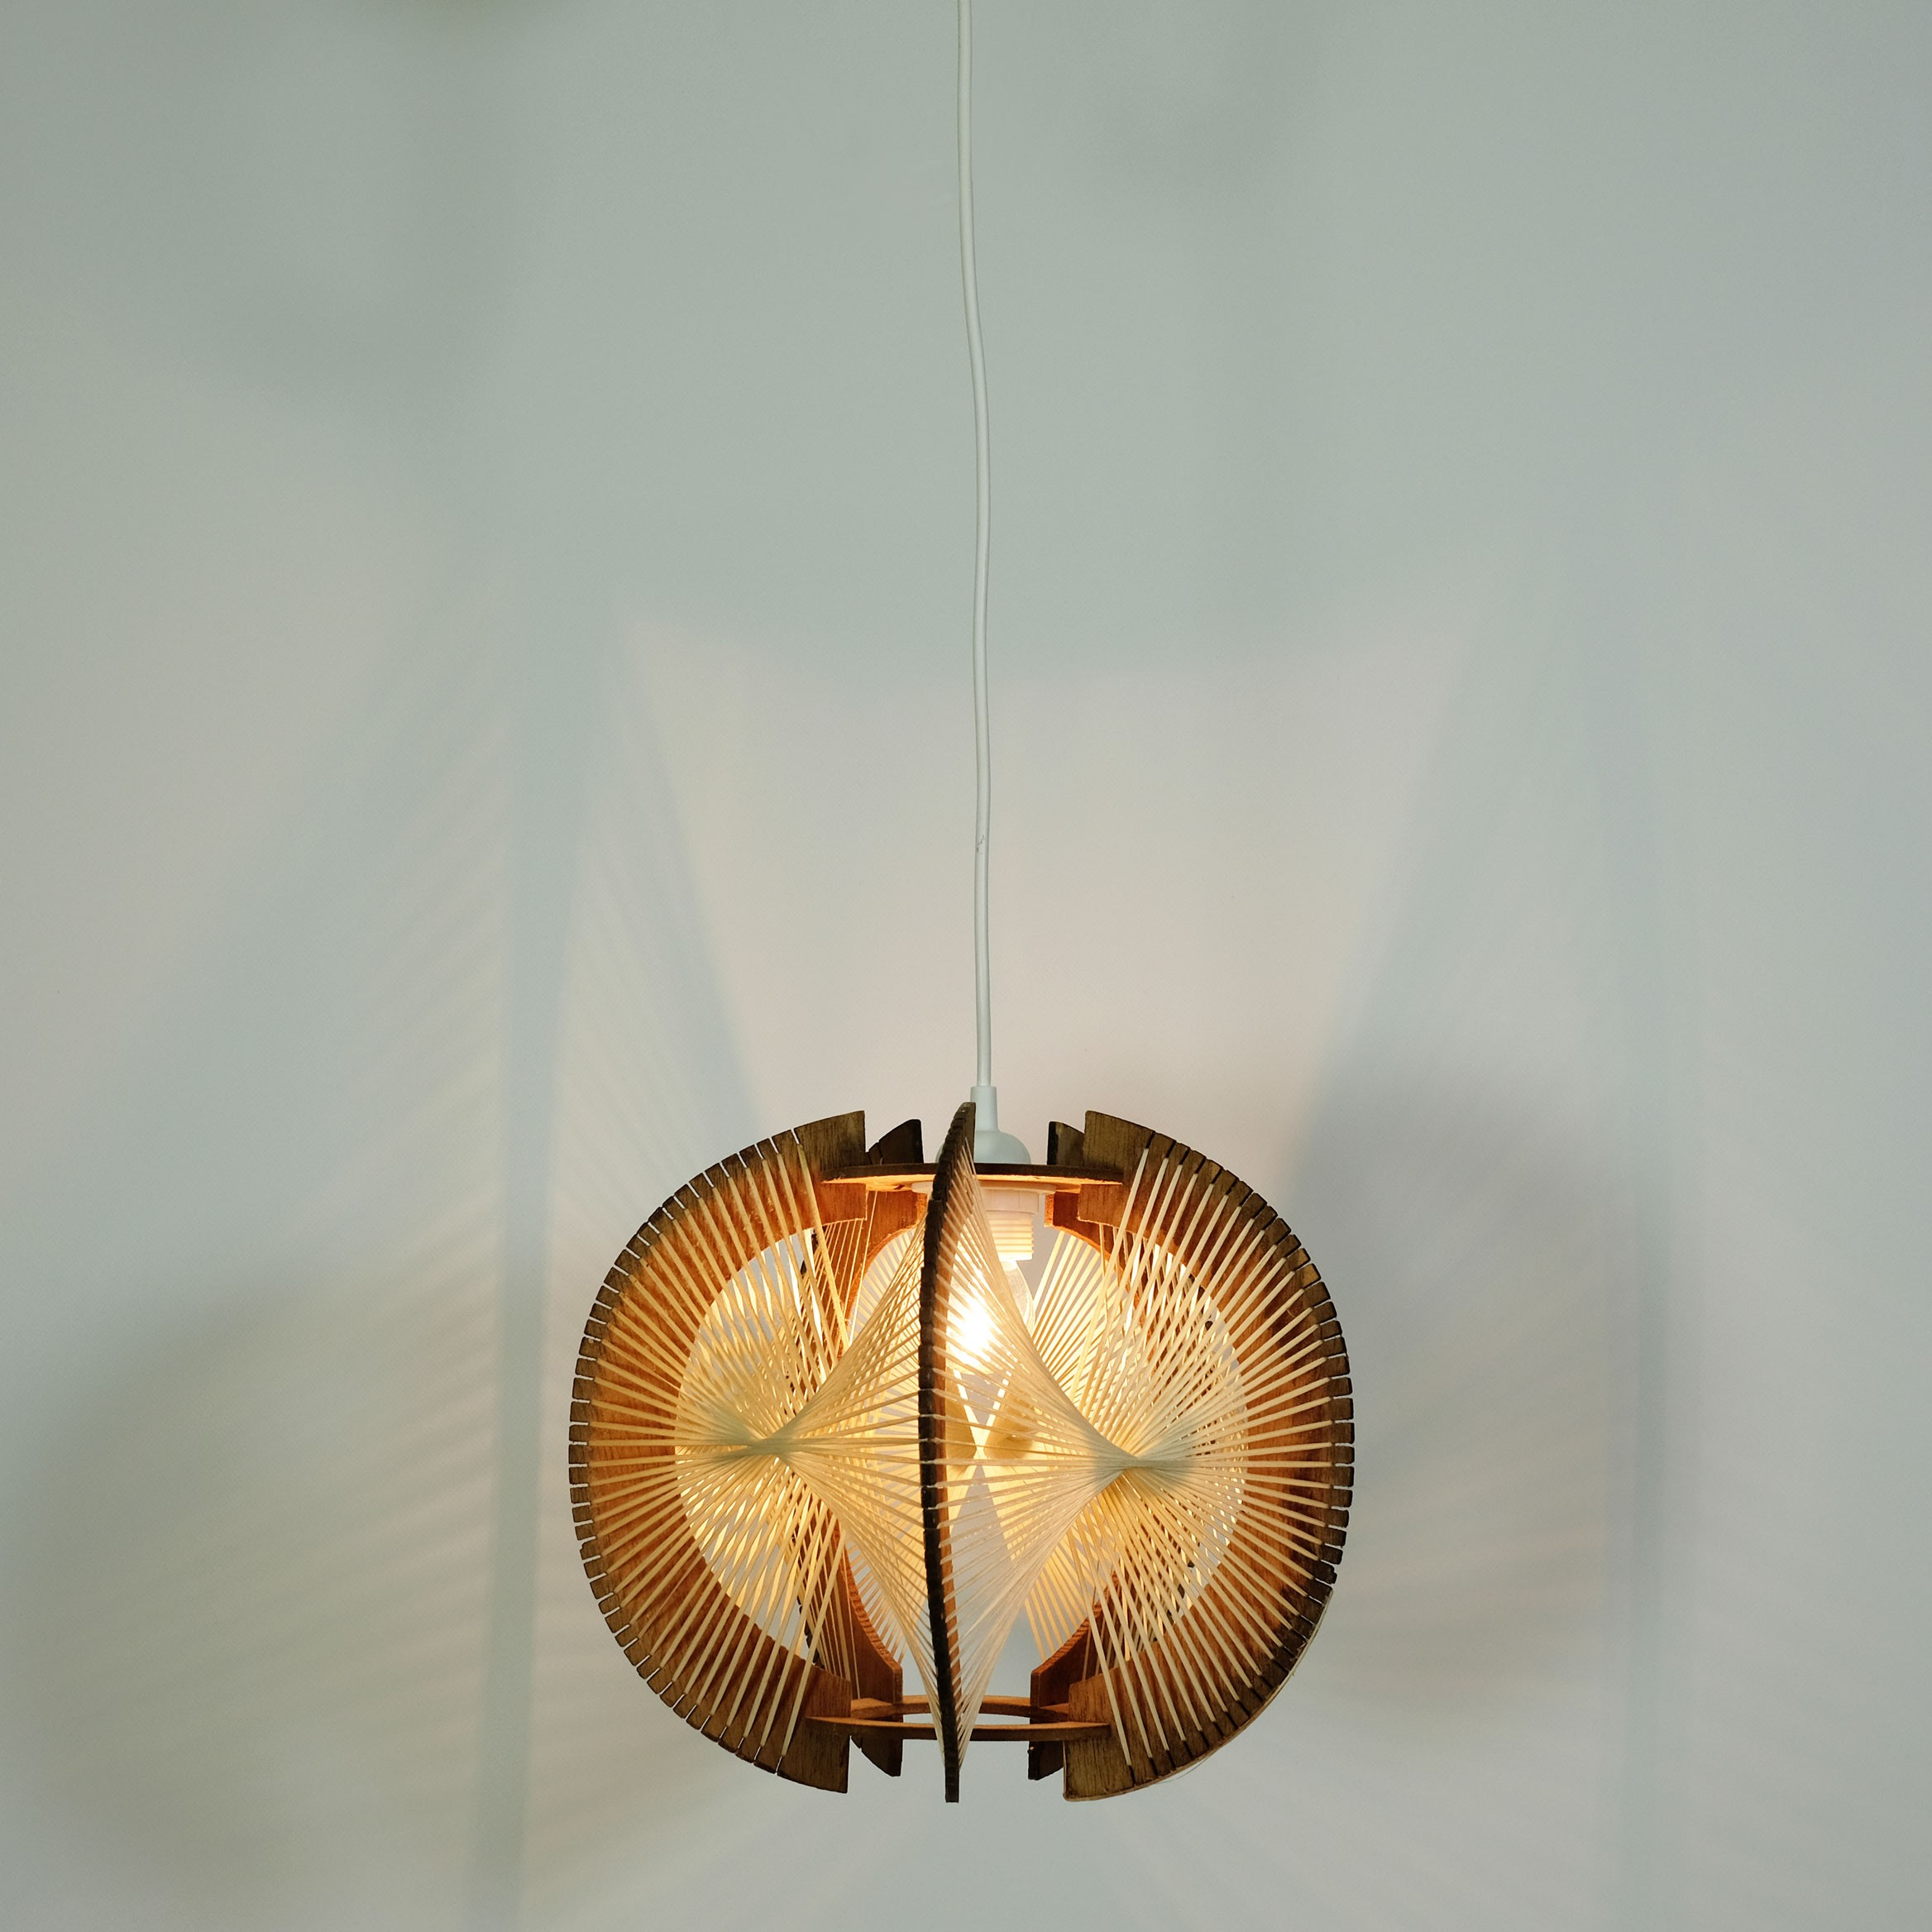 mid century pendant lighting. Mid-century Pendant Lamp In Wire And Wood - 1960s. Previous Next Mid Century Lighting O